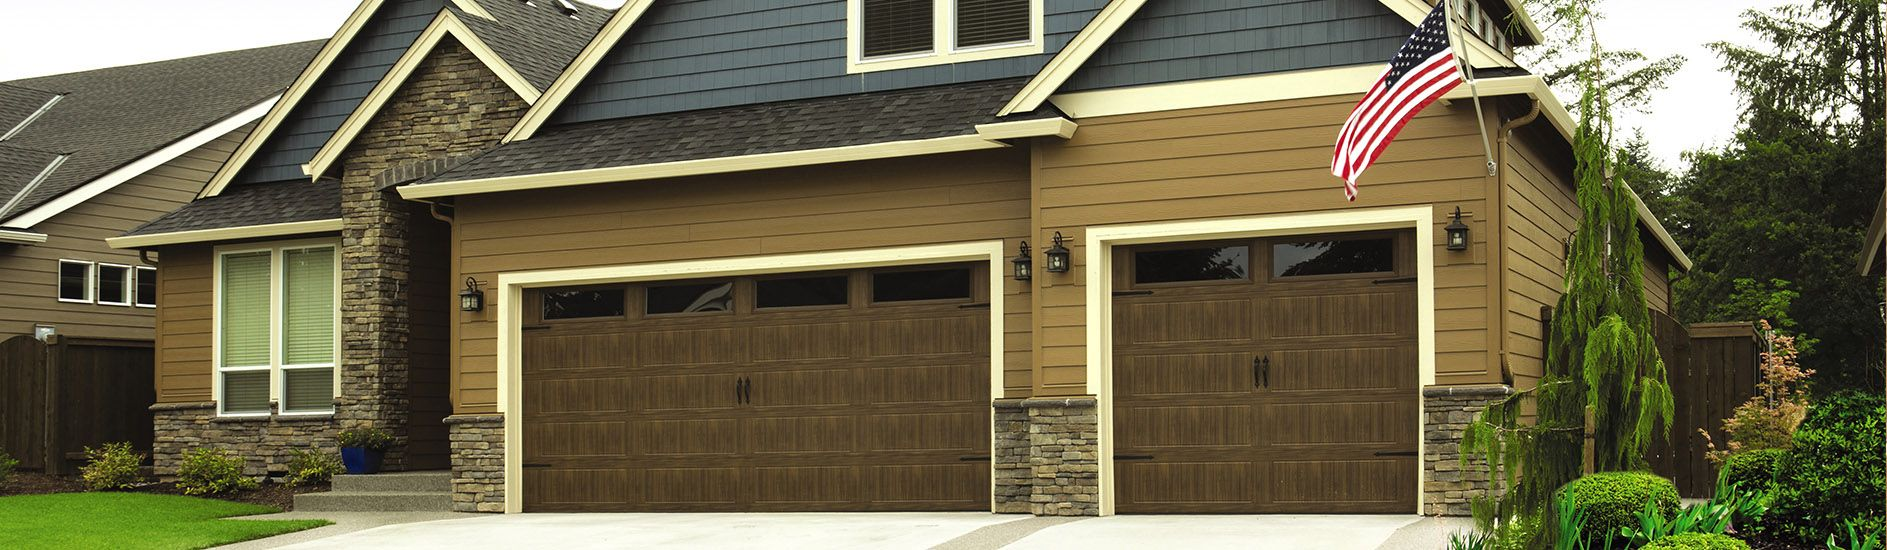 Wayne Dalton 8300 Series Sonoma Ranch Mission Oak Stockton Aspen Garage Doors Wayne Dalton Garage Doors Garage Door Repair